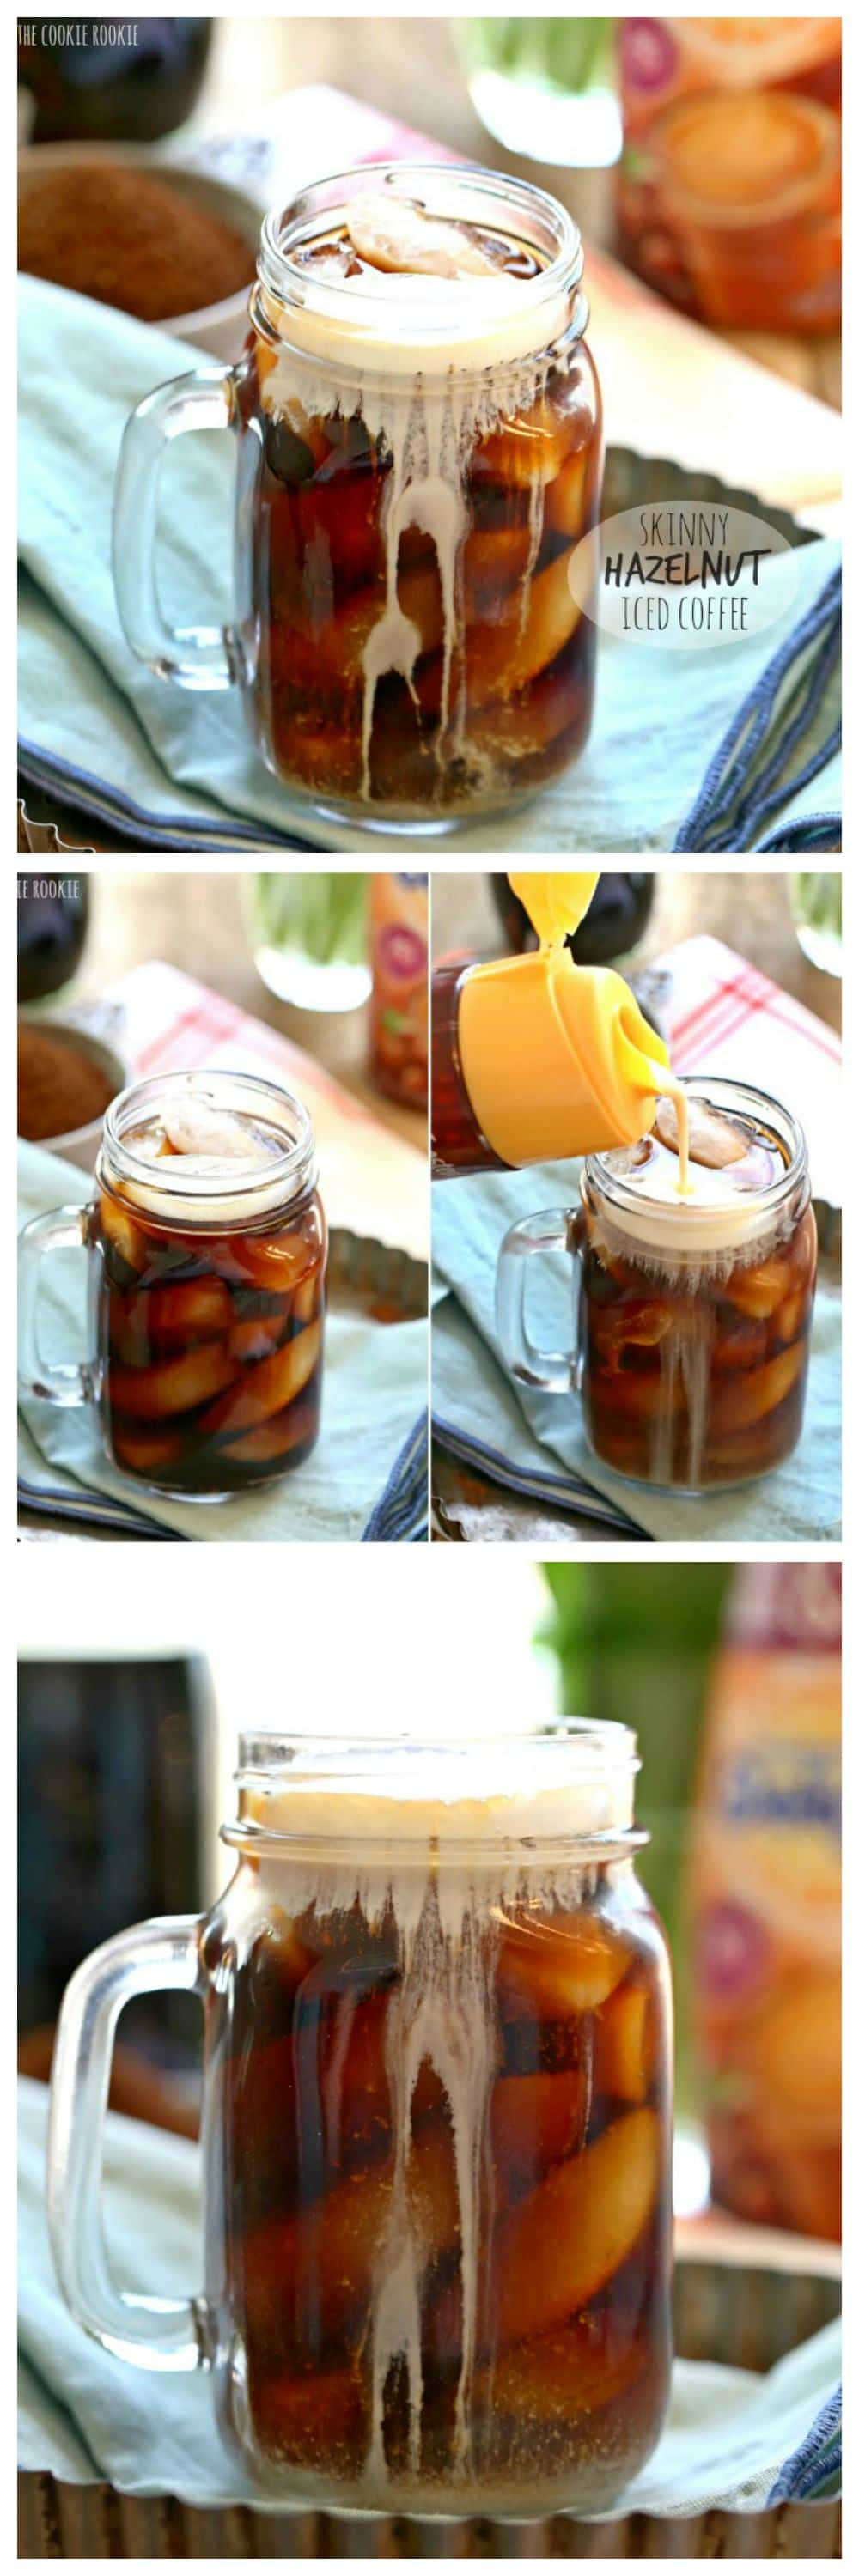 Skinny Hazelnut Iced Coffee, sugar free and fat free! Easy to make in large batches at home. DELICIOUS!   The Cookie Rookie